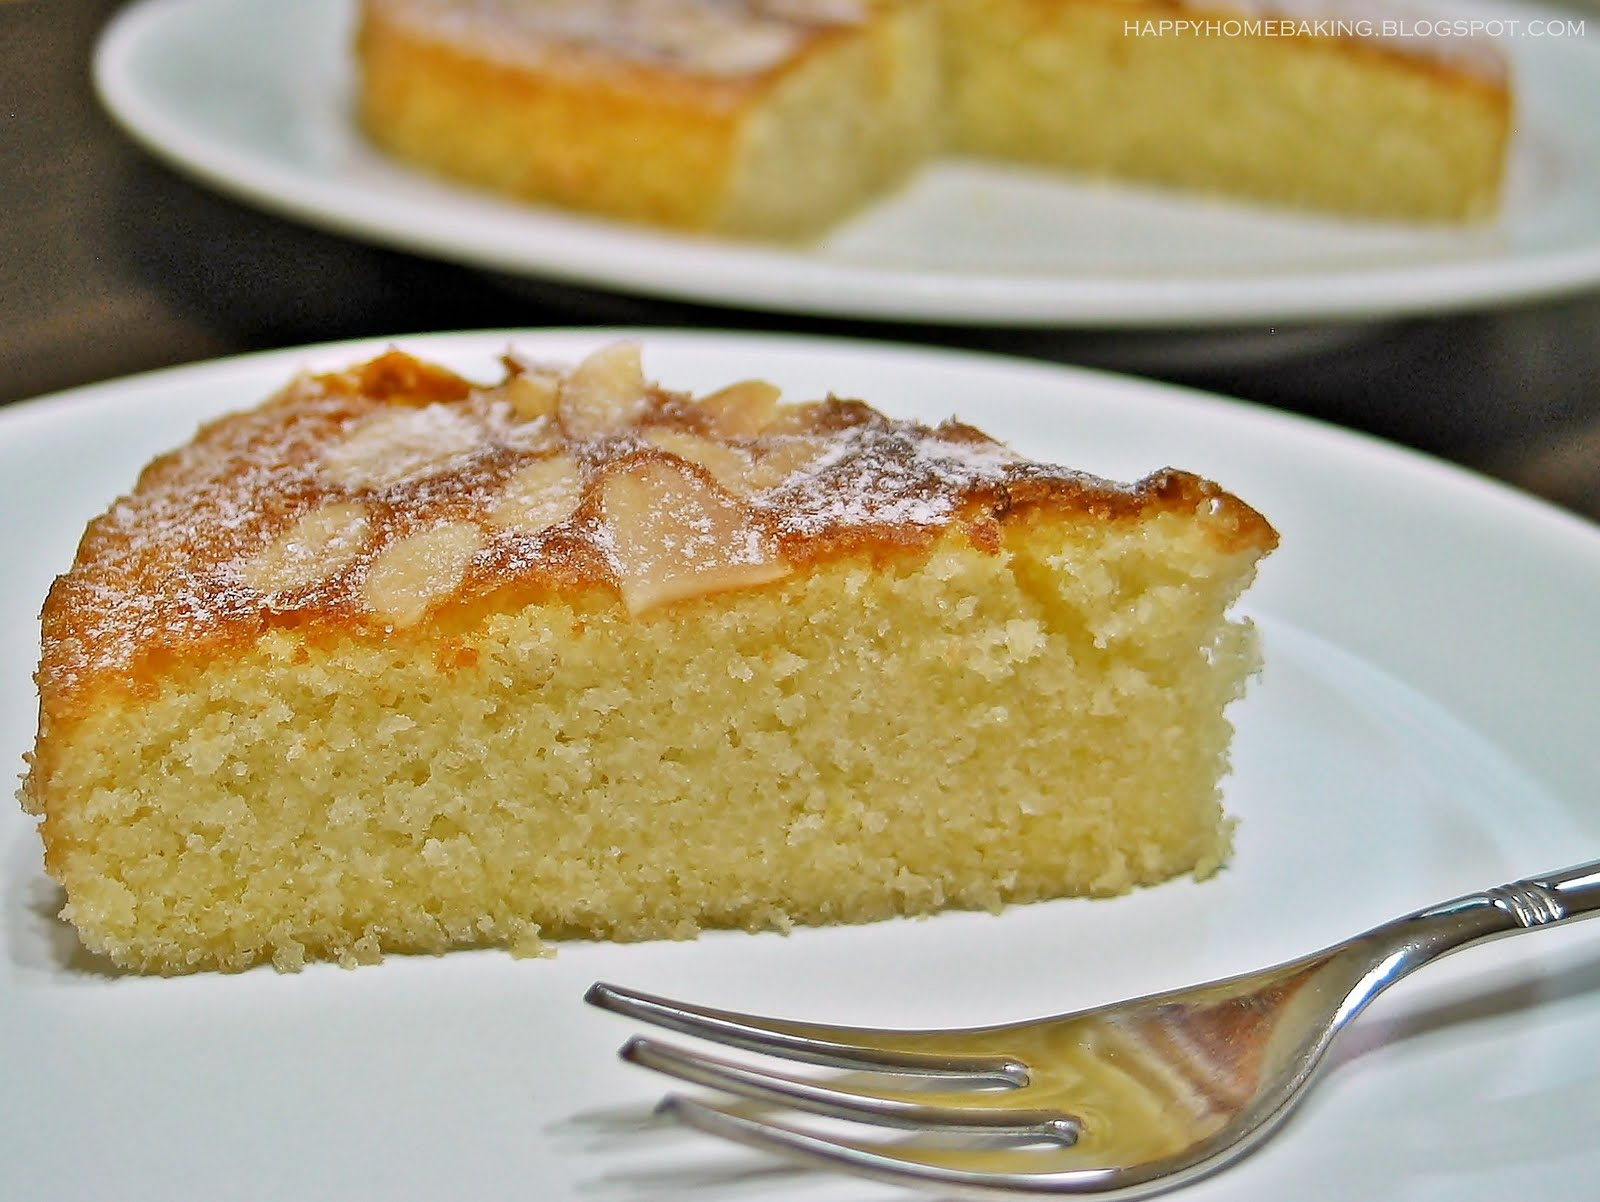 Cake Recipes Using Apple Cider